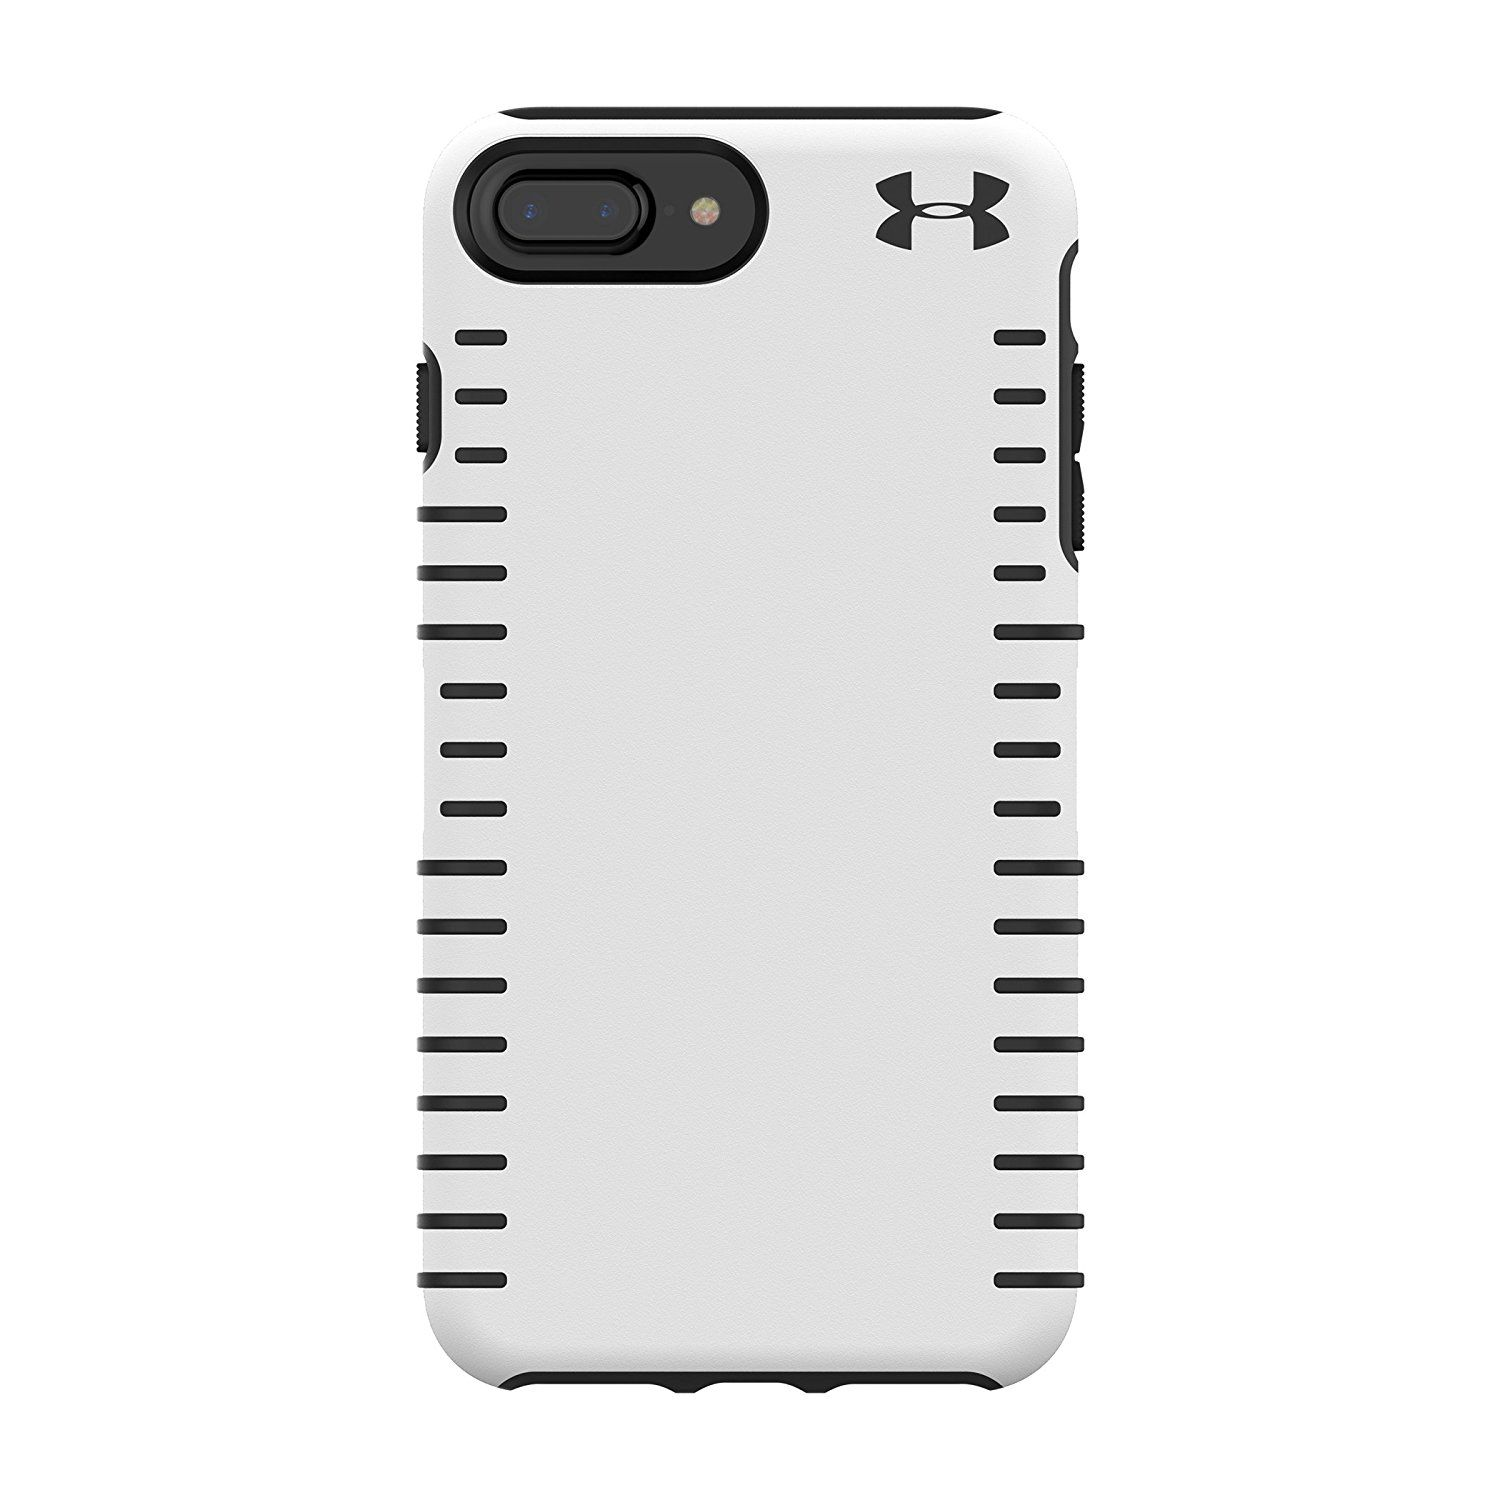 info for 895c8 23e88 Under Armour UA Protect Grip Case for iPhone 8 Plus - also ...